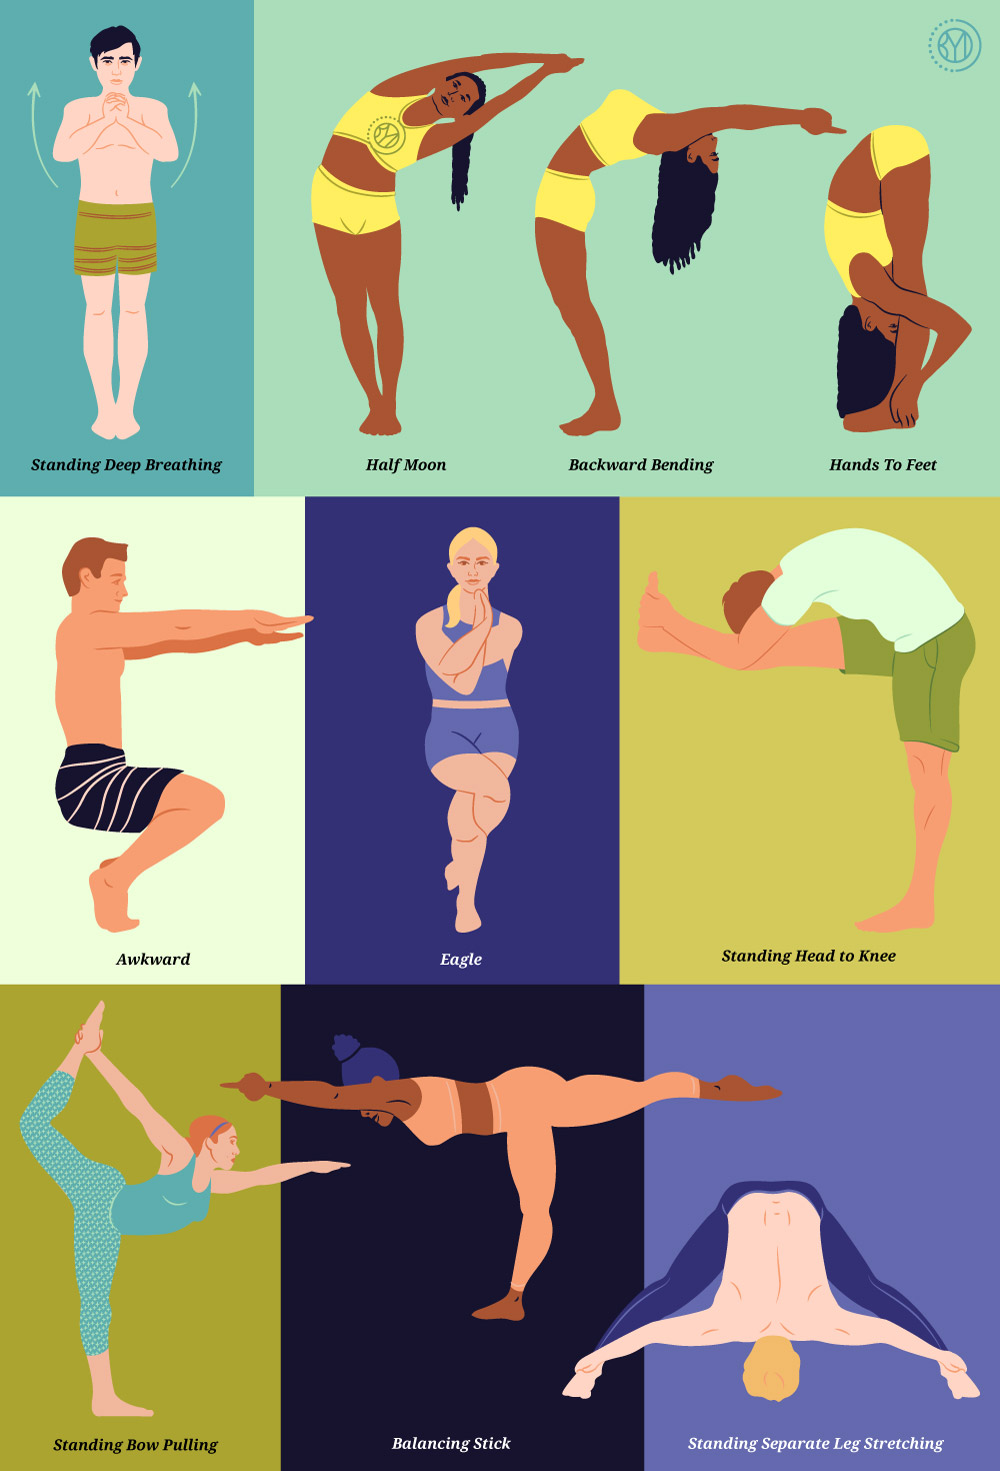 Bikram Sequence poses 1-8